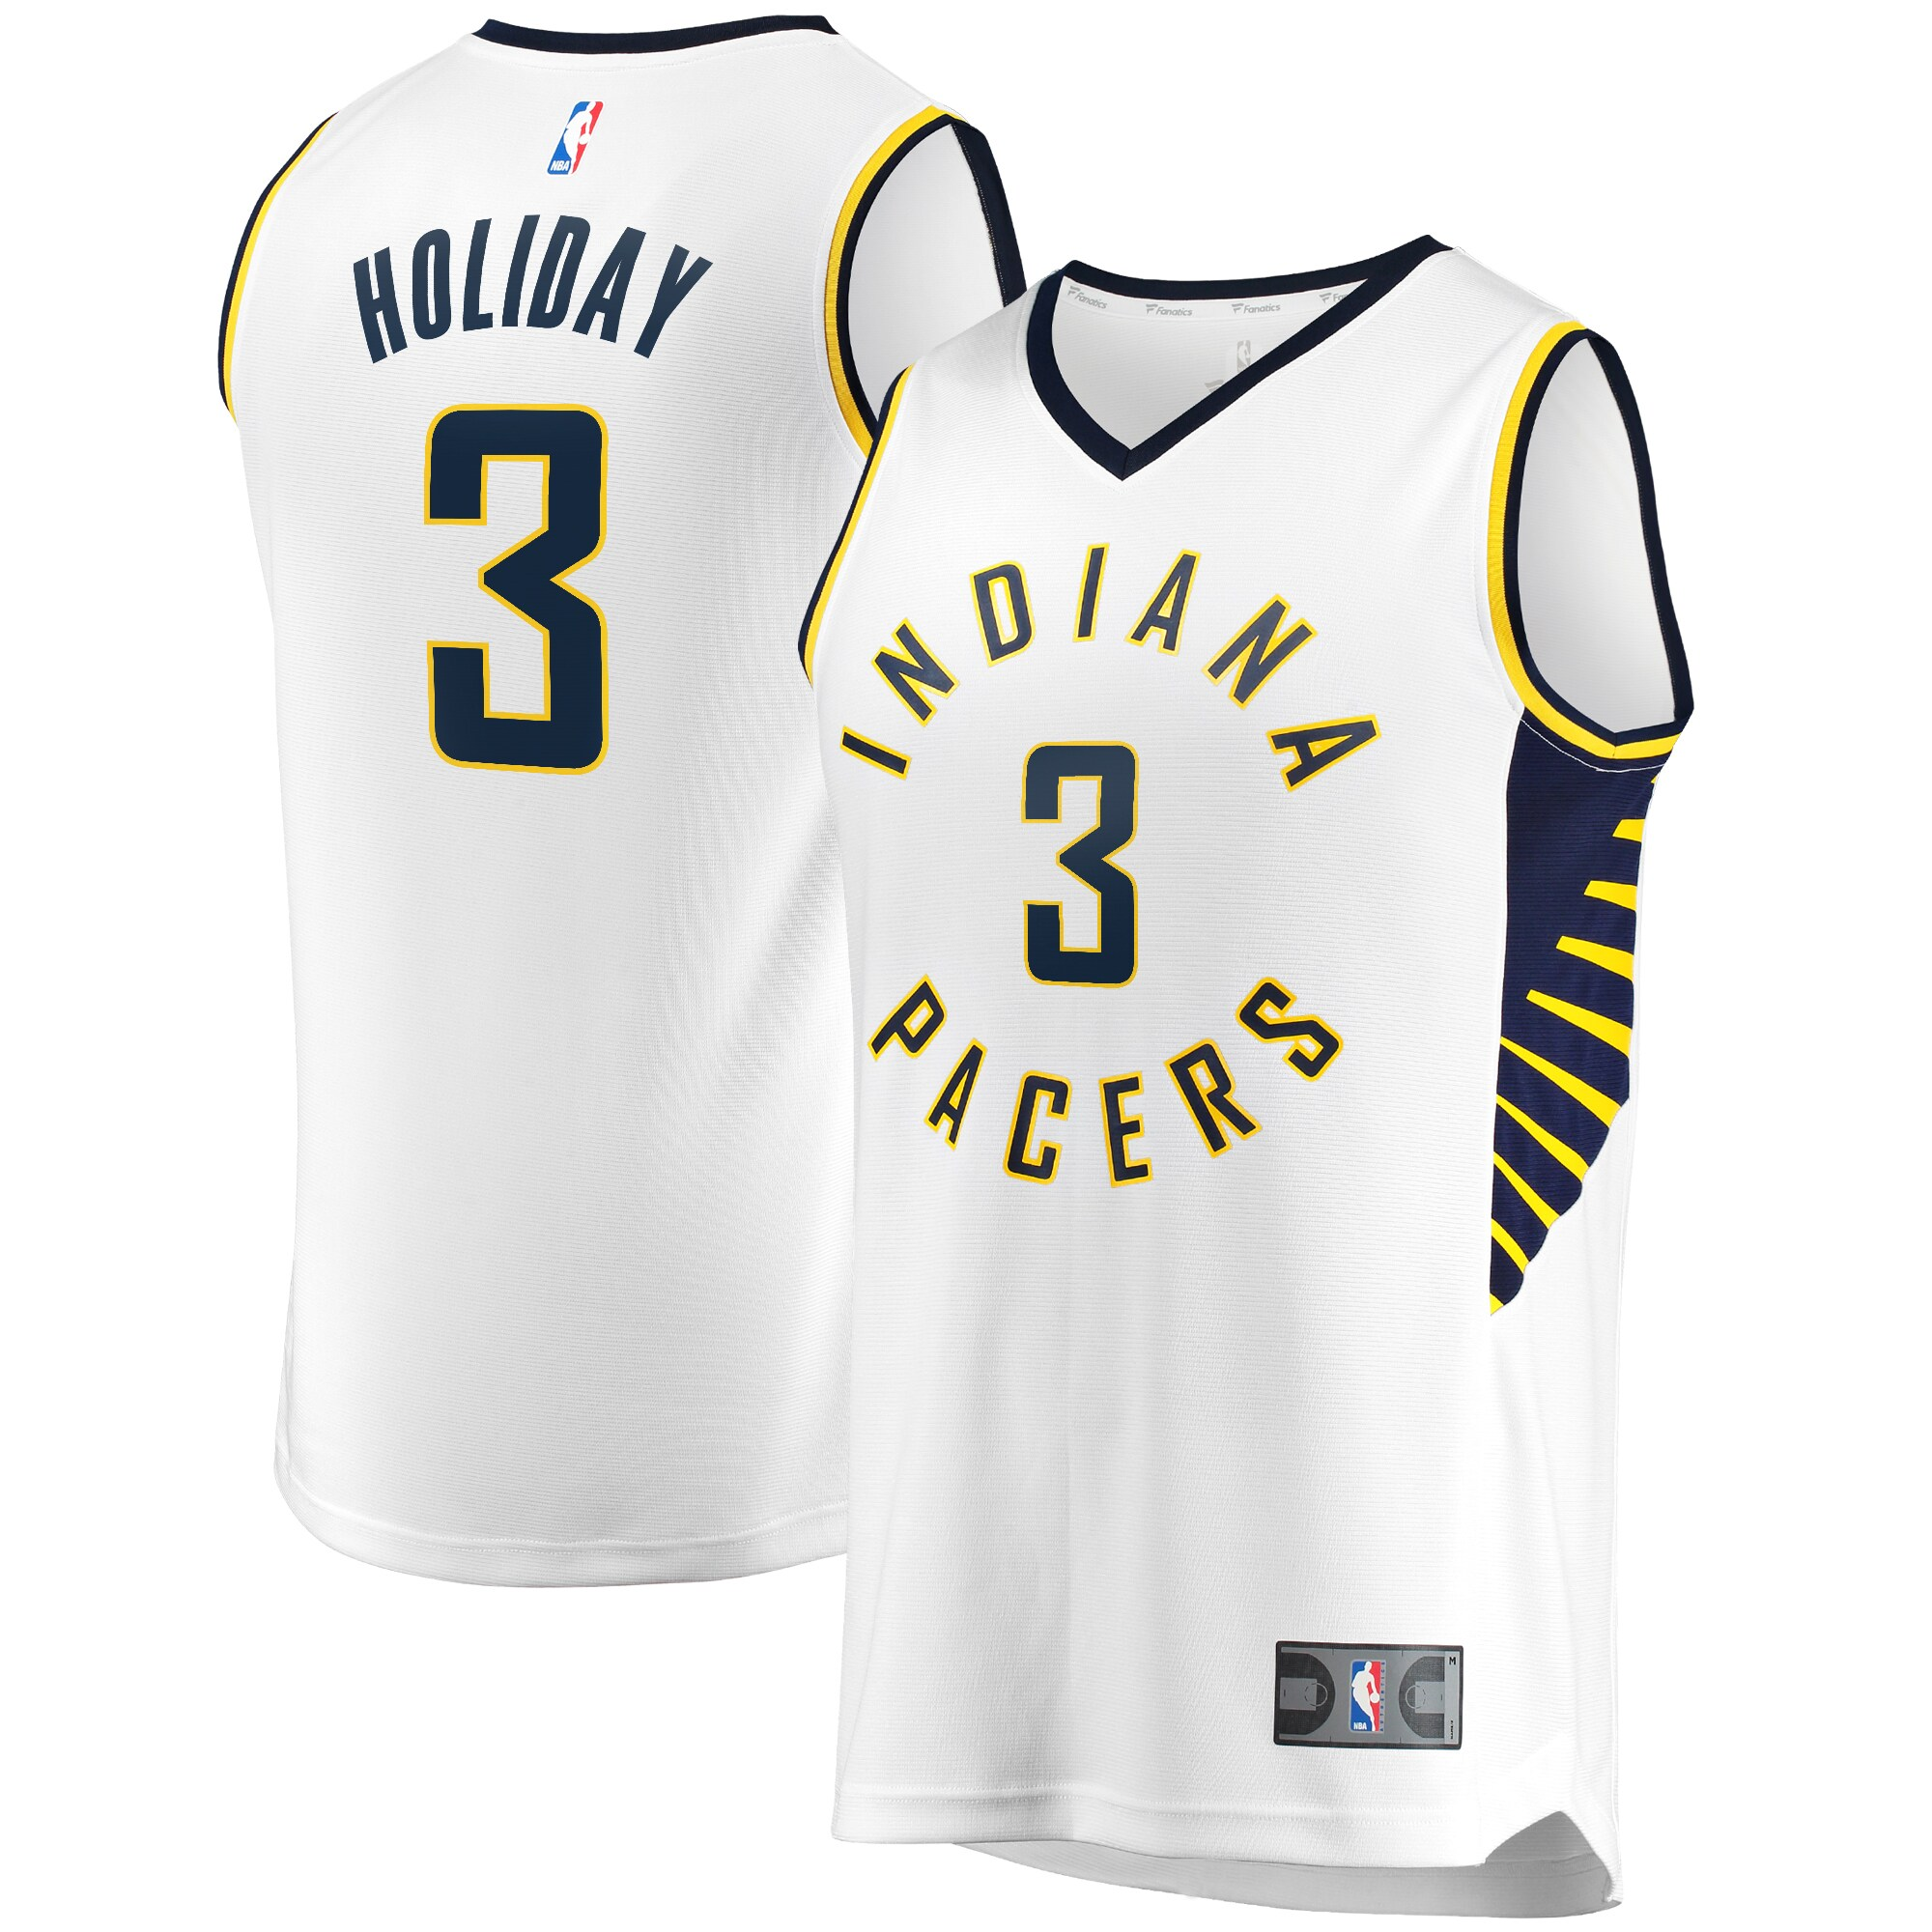 Aaron Holiday Indiana Pacers Fanatics Branded Youth Fast Break Replica Player Jersey - Association Edition - White